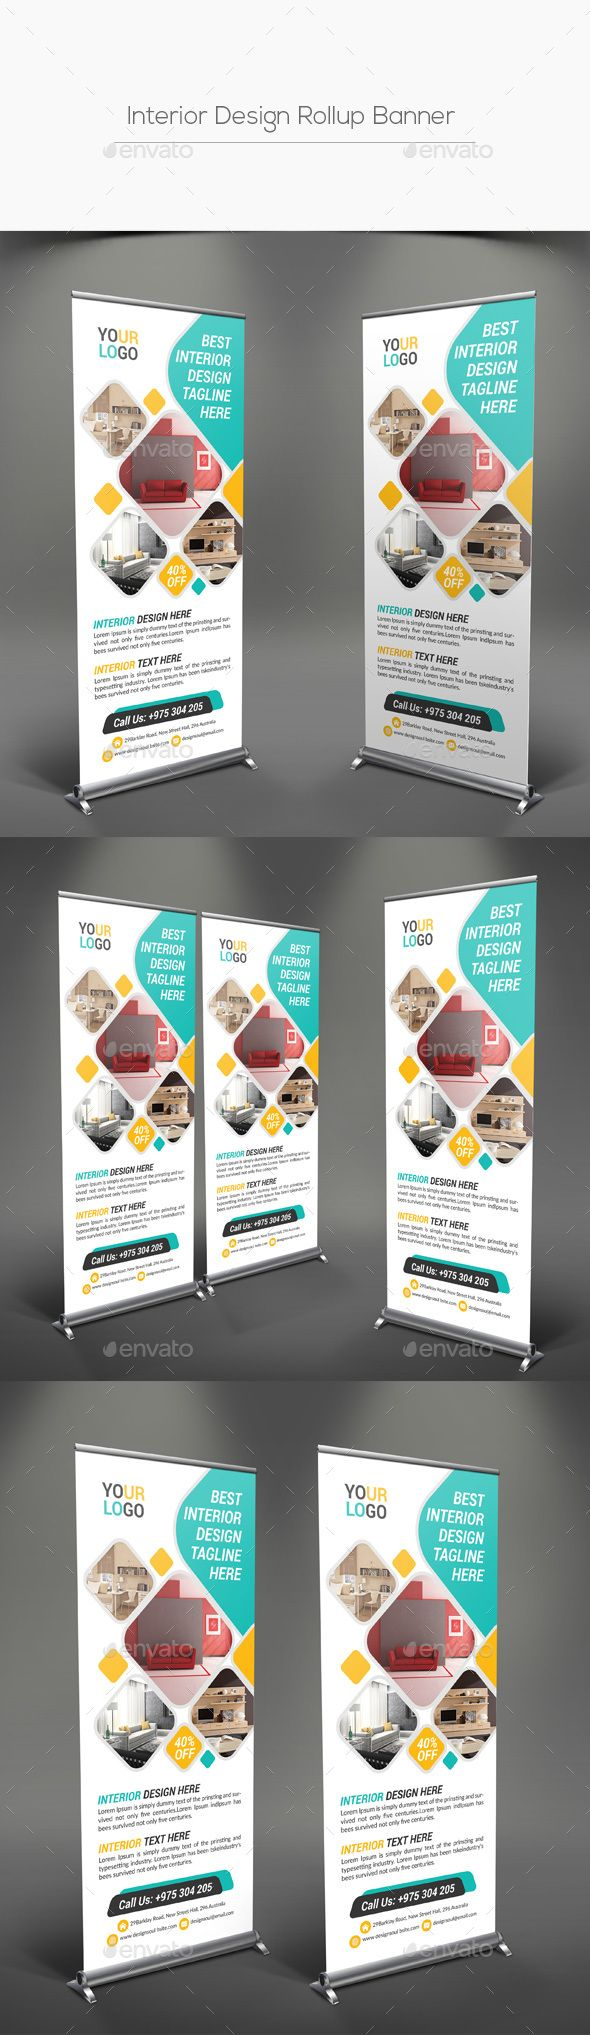 Design for roll up banner - Interior Design Rollup Banner Signage Print Templates